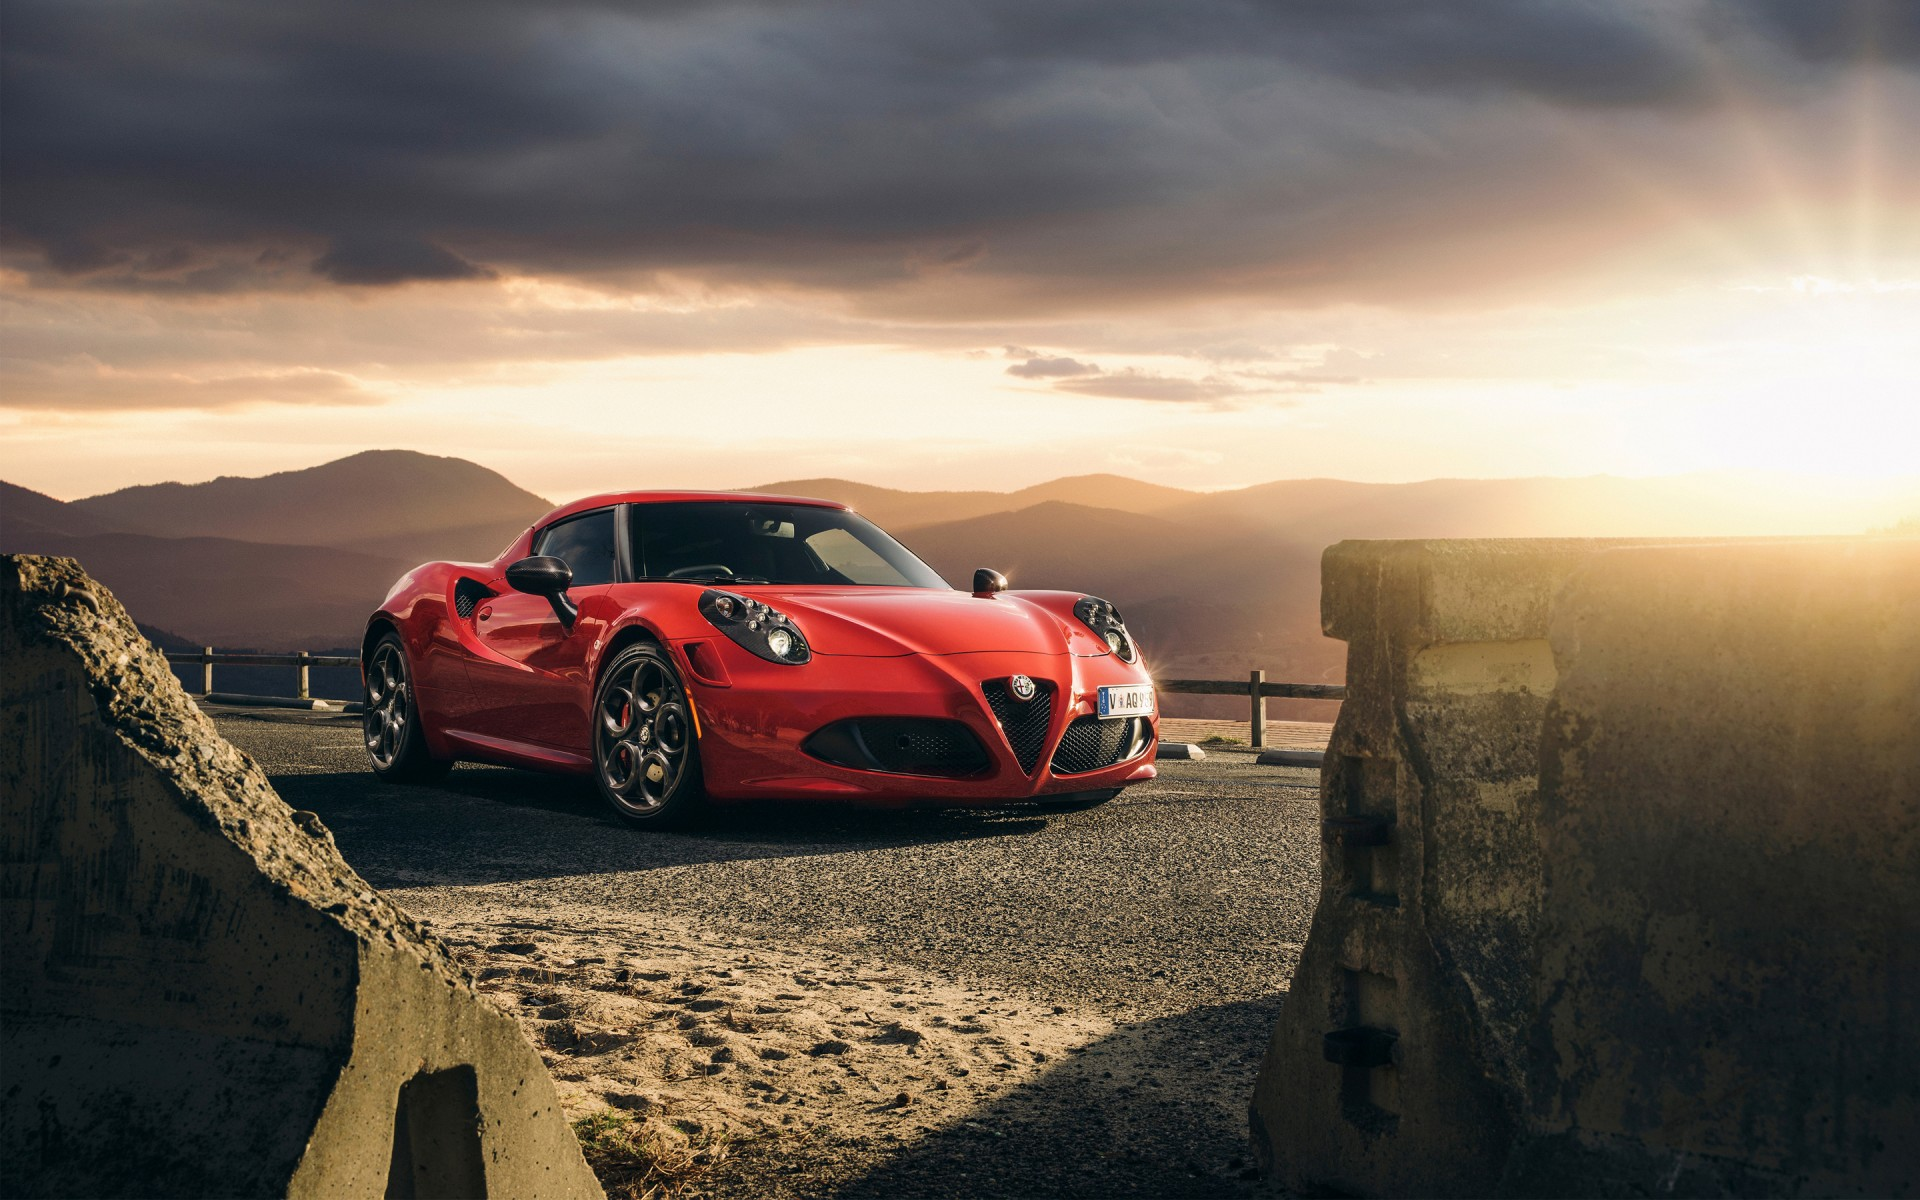 Auto Mobile Wallpapers Hd: 2015 Alfa Romeo 4C Launch Edition Wallpaper